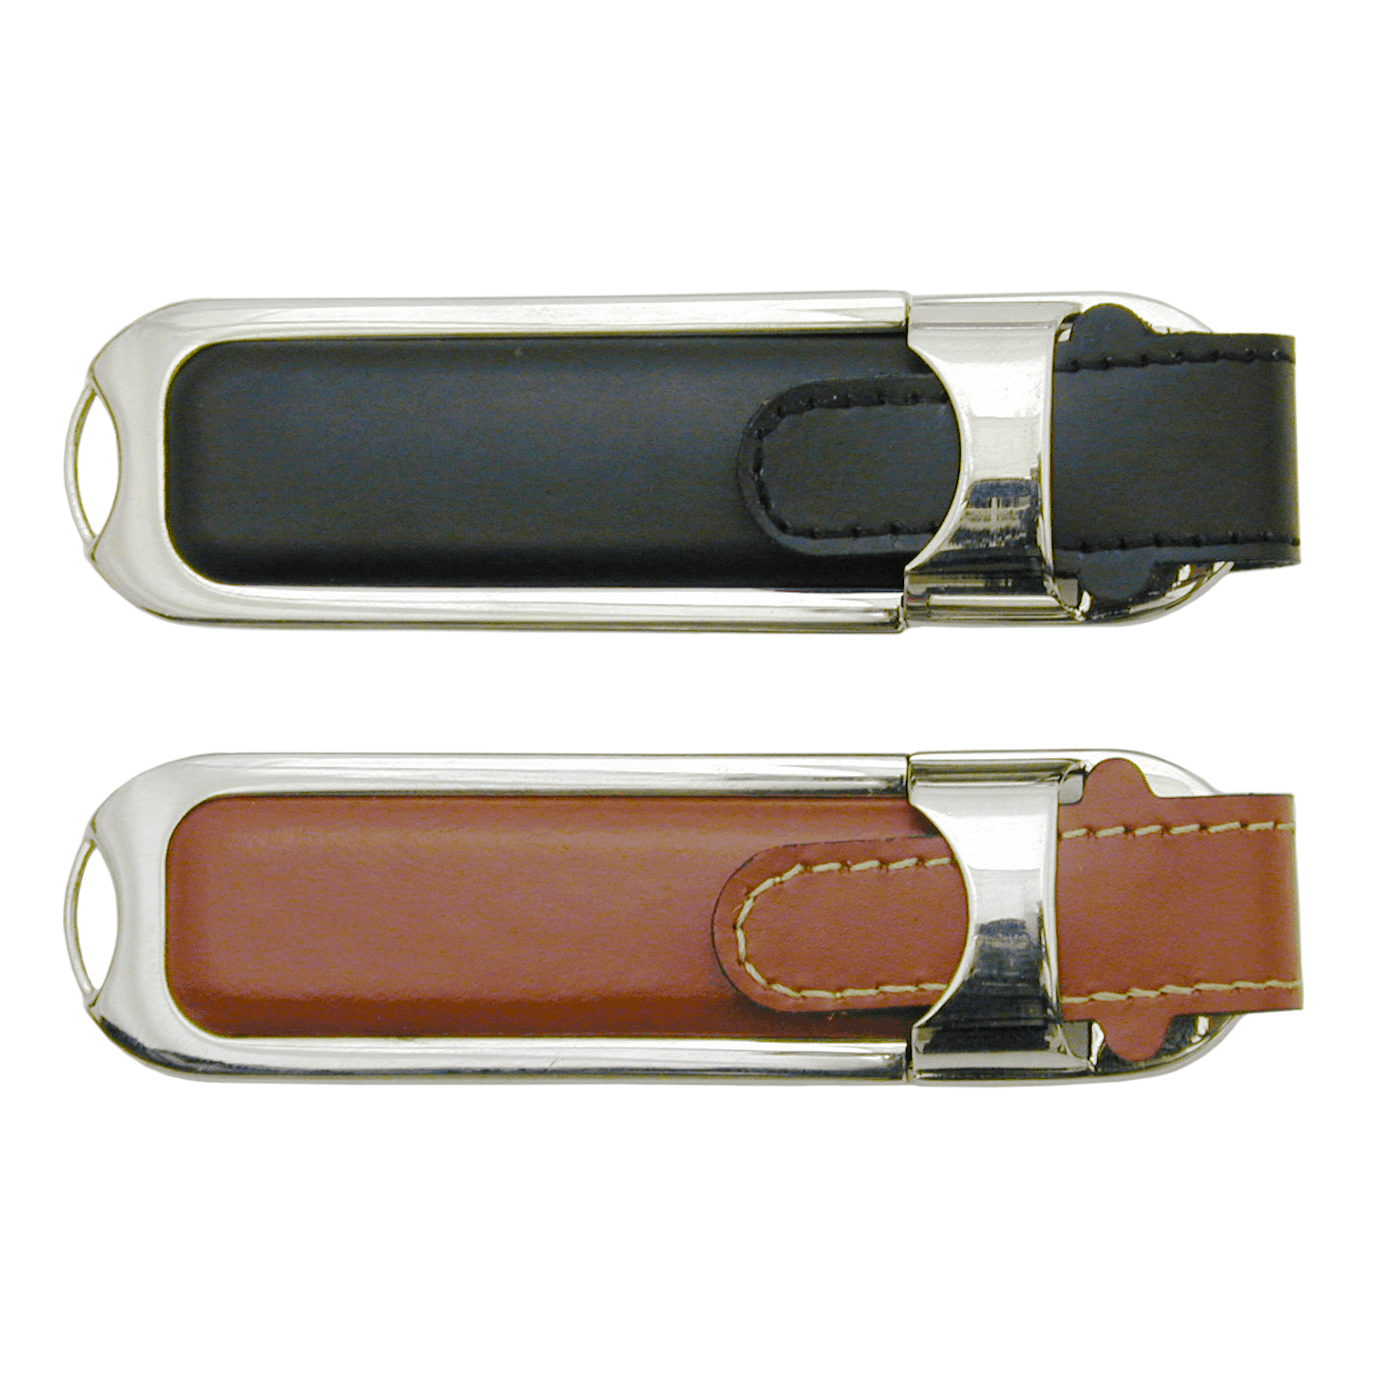 Genuine Leather USB Flash Drive - 8GB